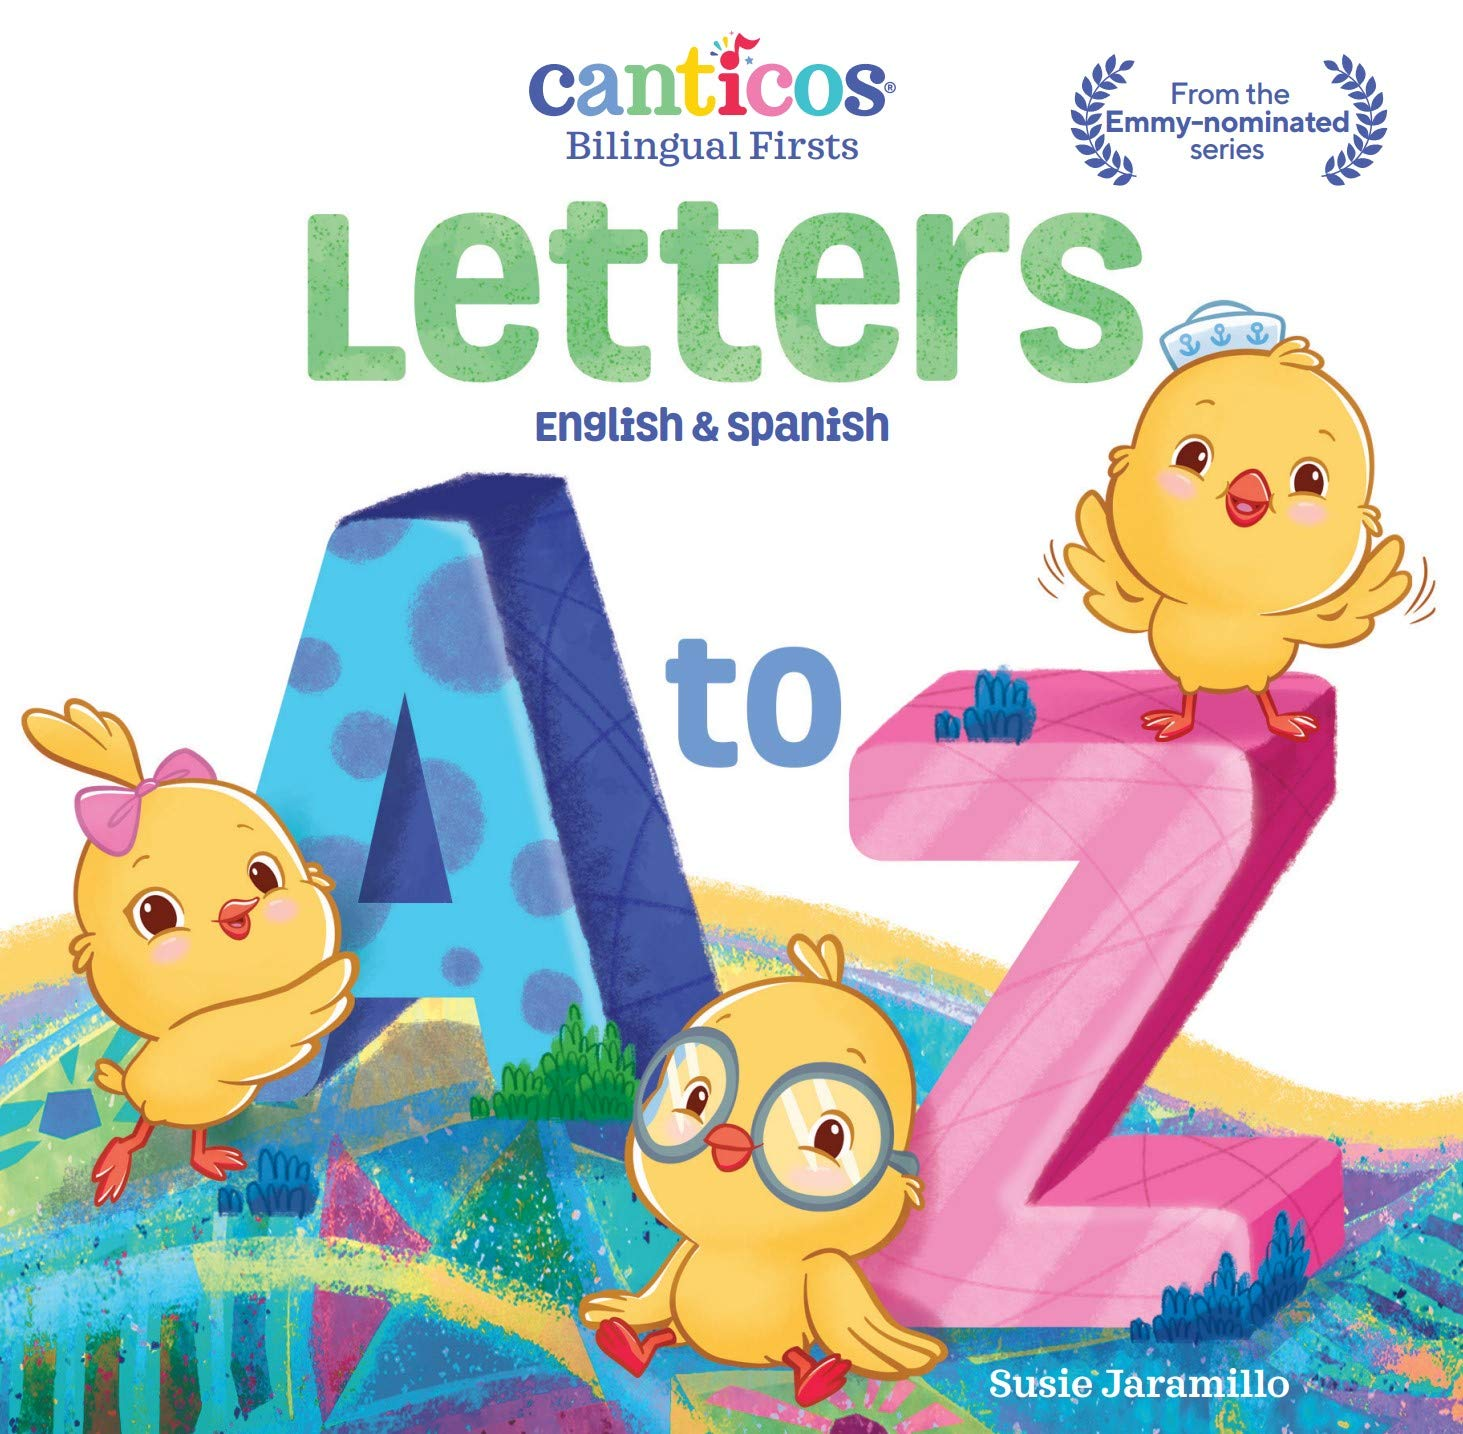 celebrate-picture-books-picture-book-review-cantos-letters-a-to-z-cover